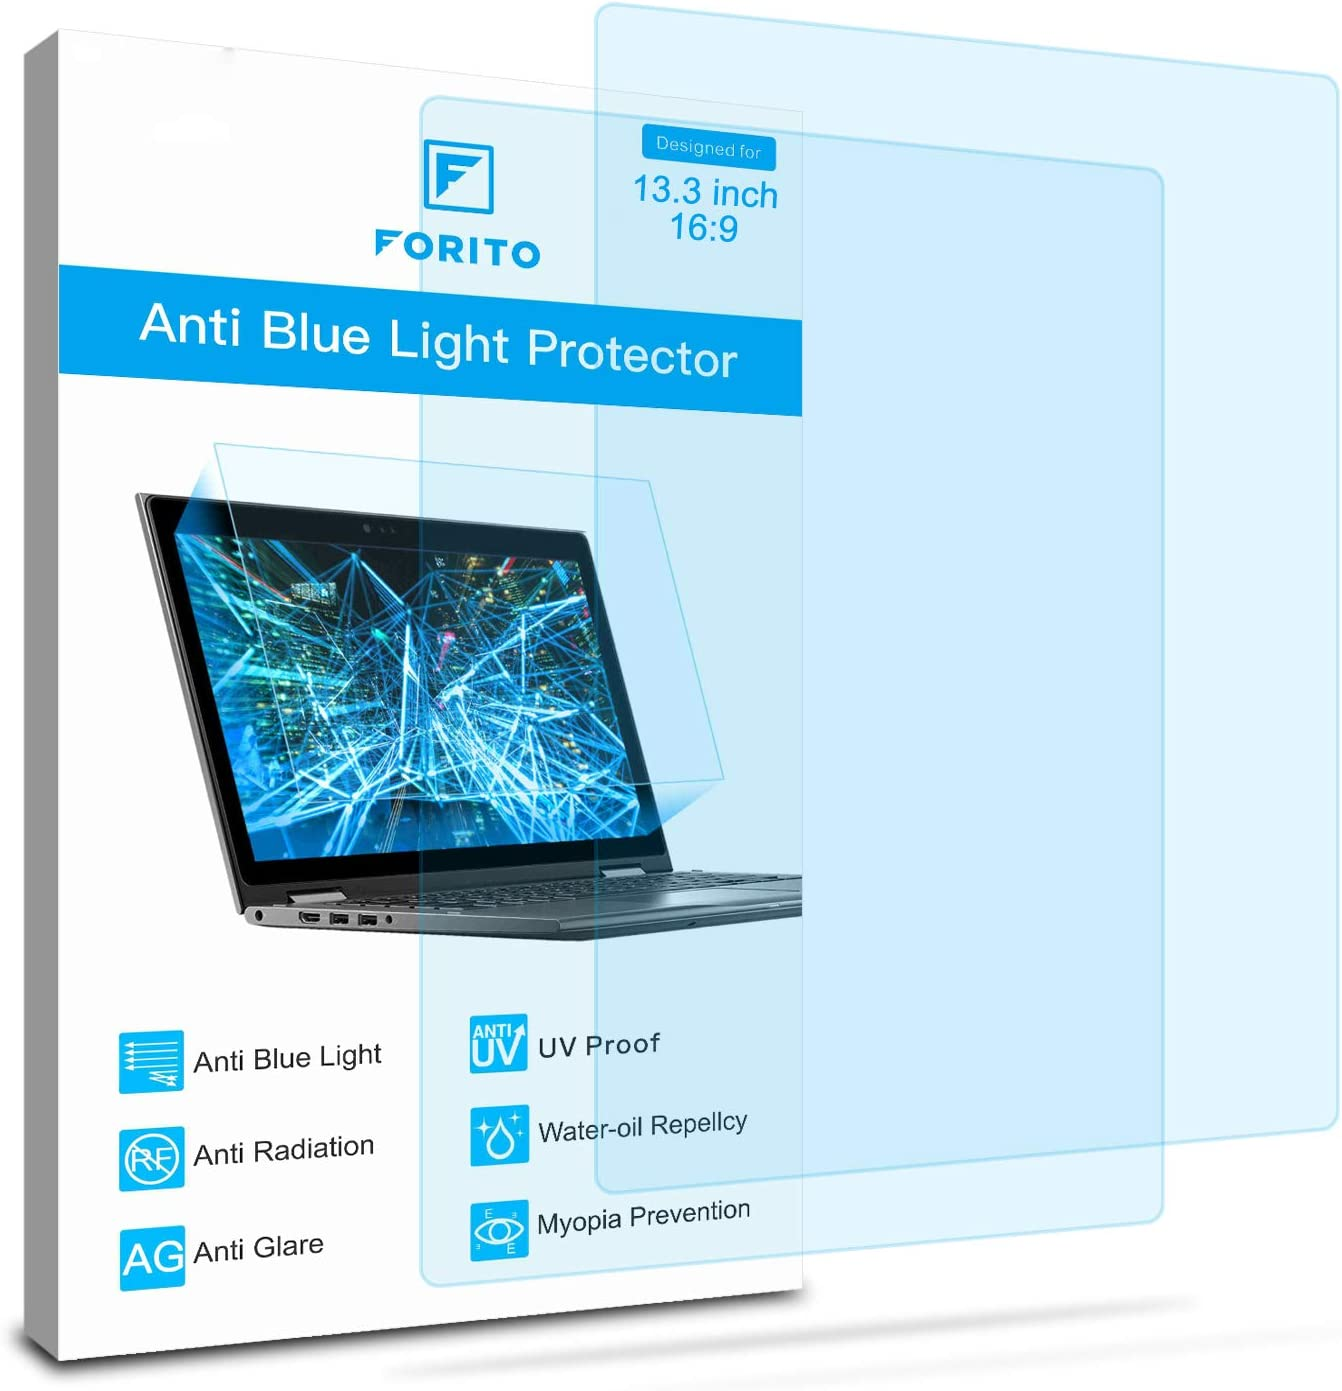 "2-Pack 13.3 Inch Screen Protector -Blue Light and Anti Glare Filter, FORITO Eye Protection Blue Light Blocking & Anti Glare Screen Protector for 13.3"" with 16:9 Aspect Ratio Laptop"